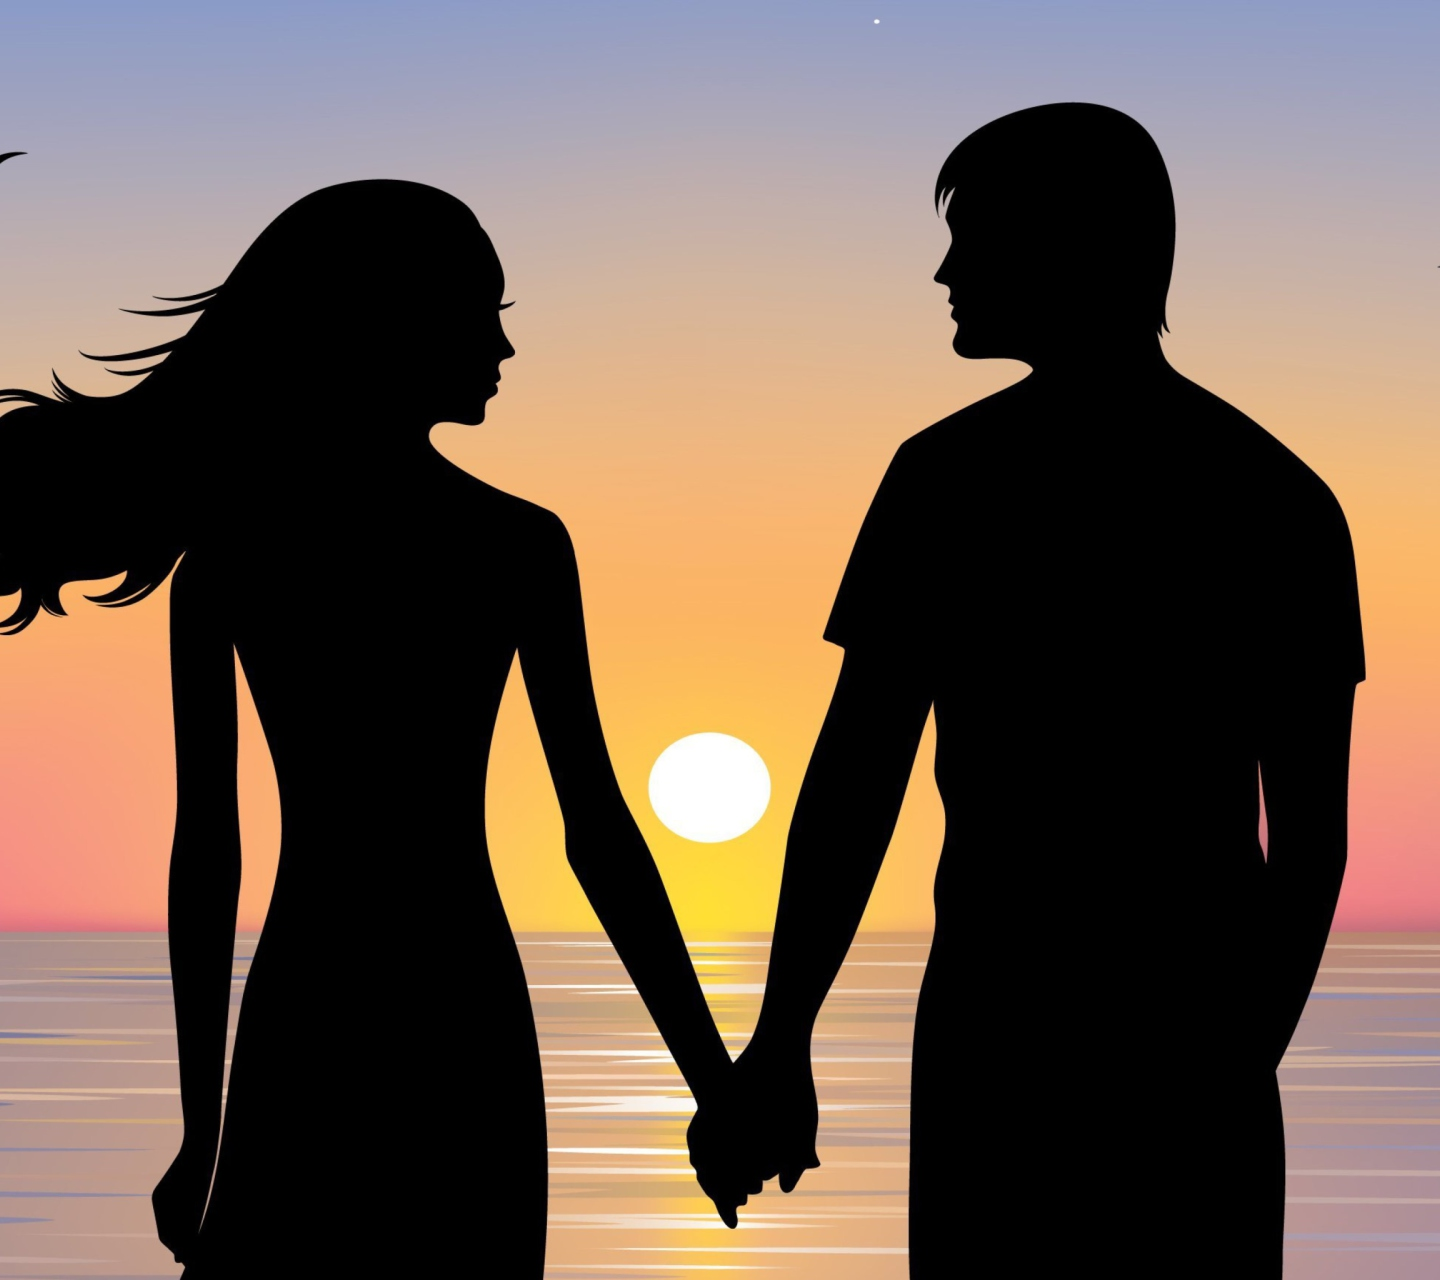 romantic silhouette wallpapers - photo #35